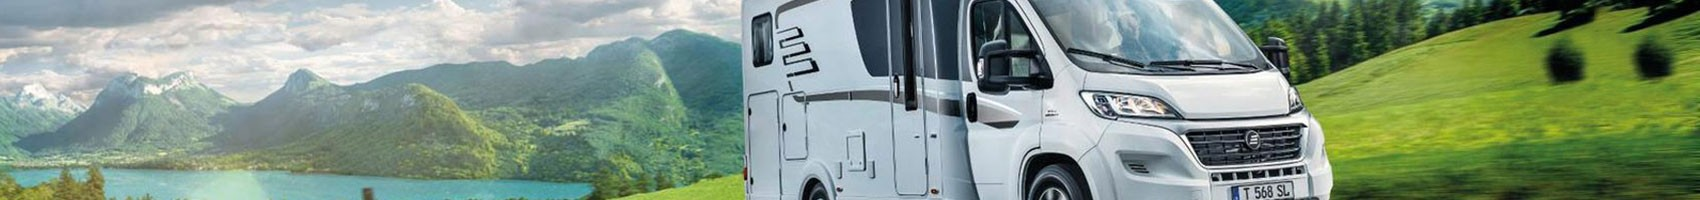 Motorhome Insurance Guide